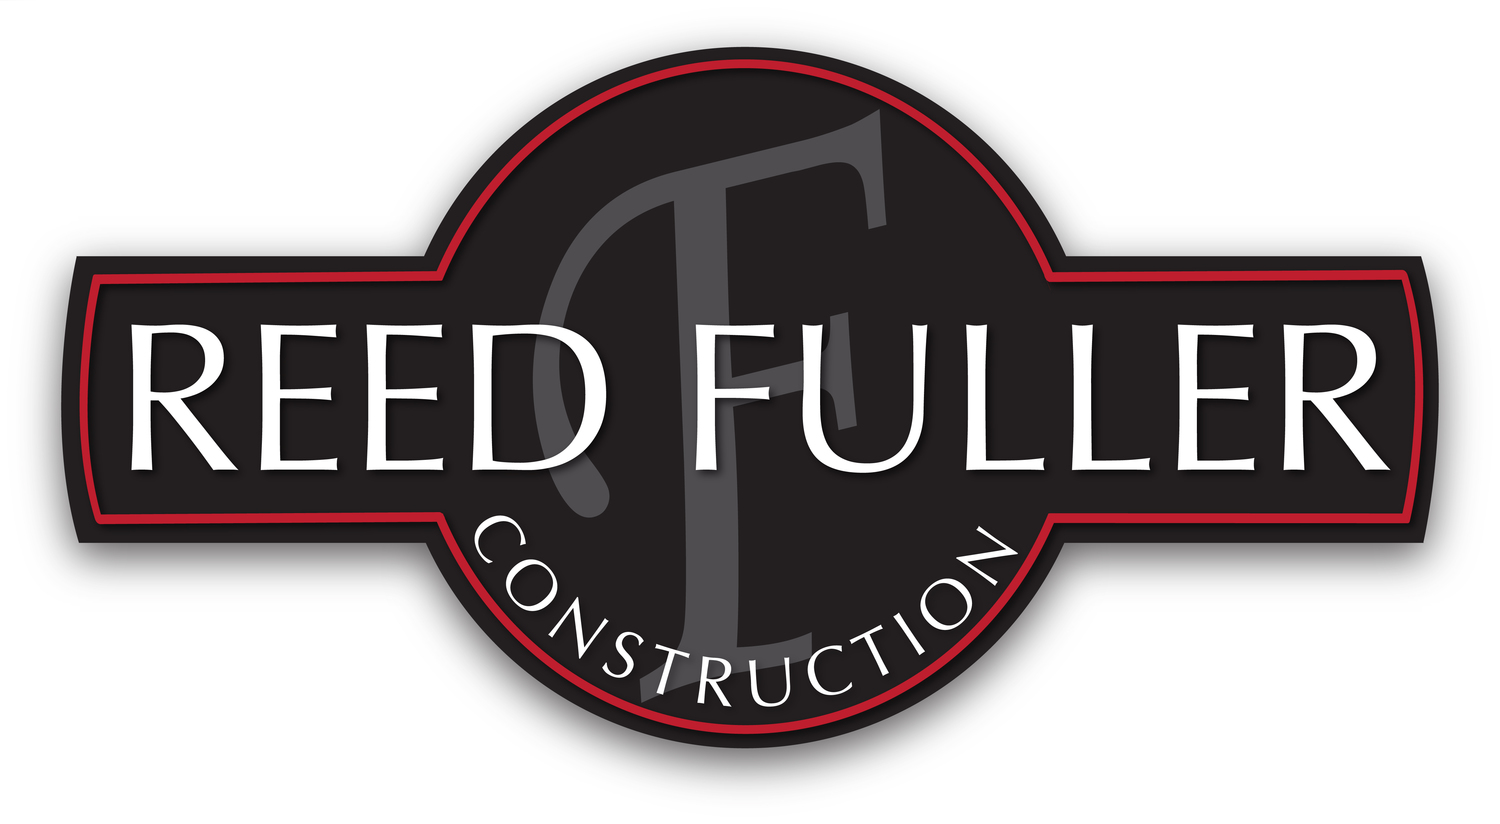 Reed Fuller Construction